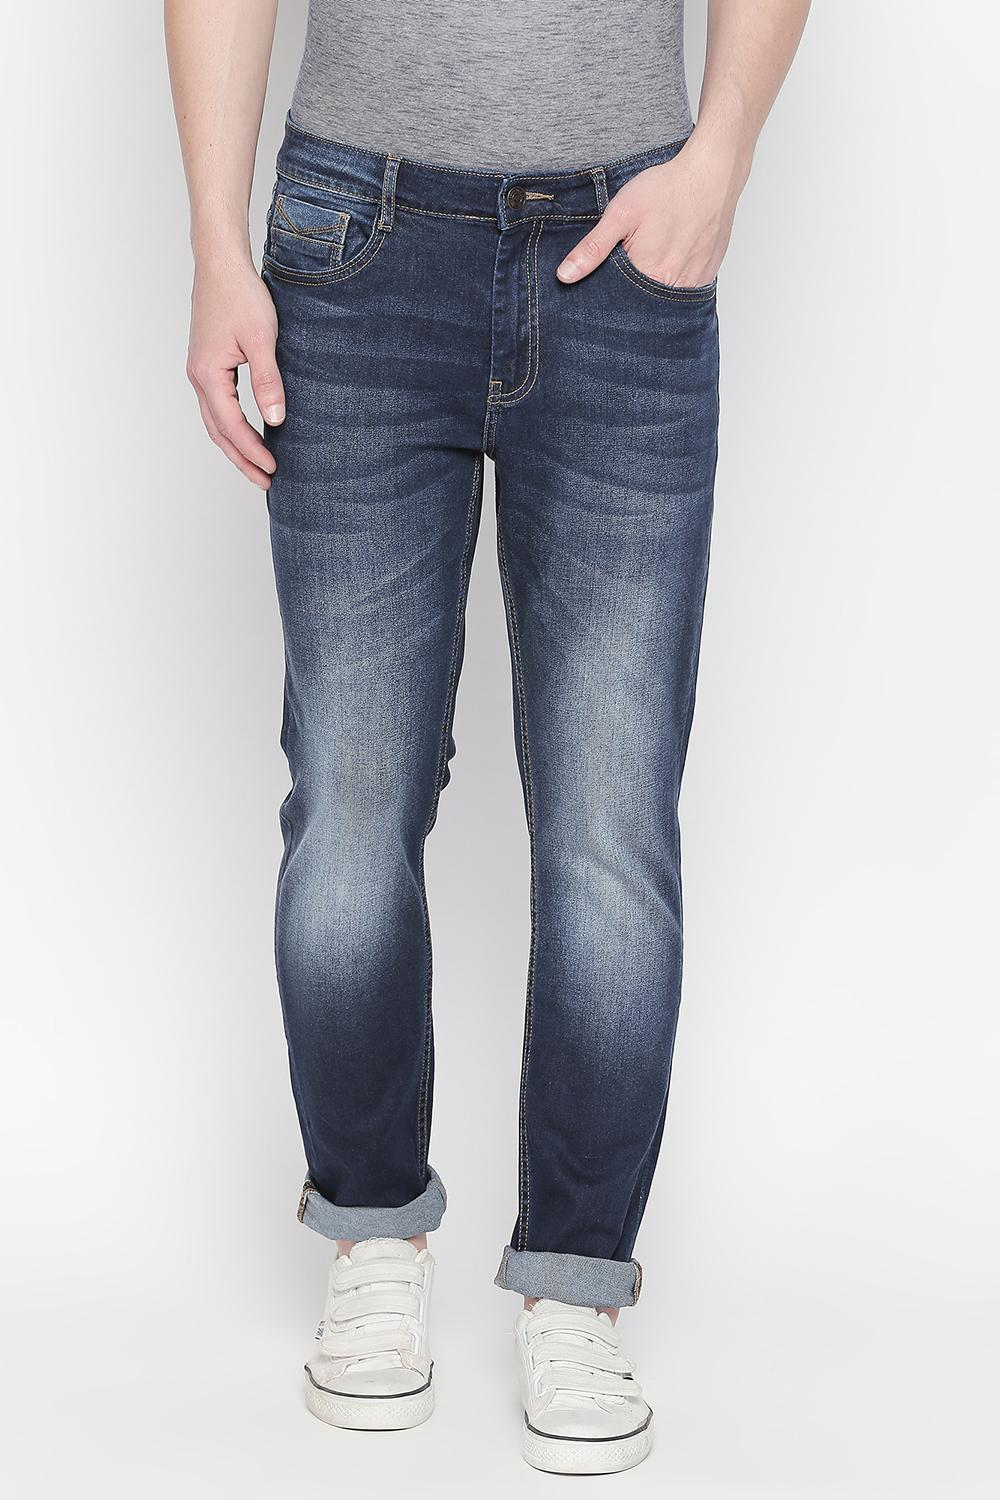 Bare Denim Jeans, Solid Regular Fit Jeans for Men at